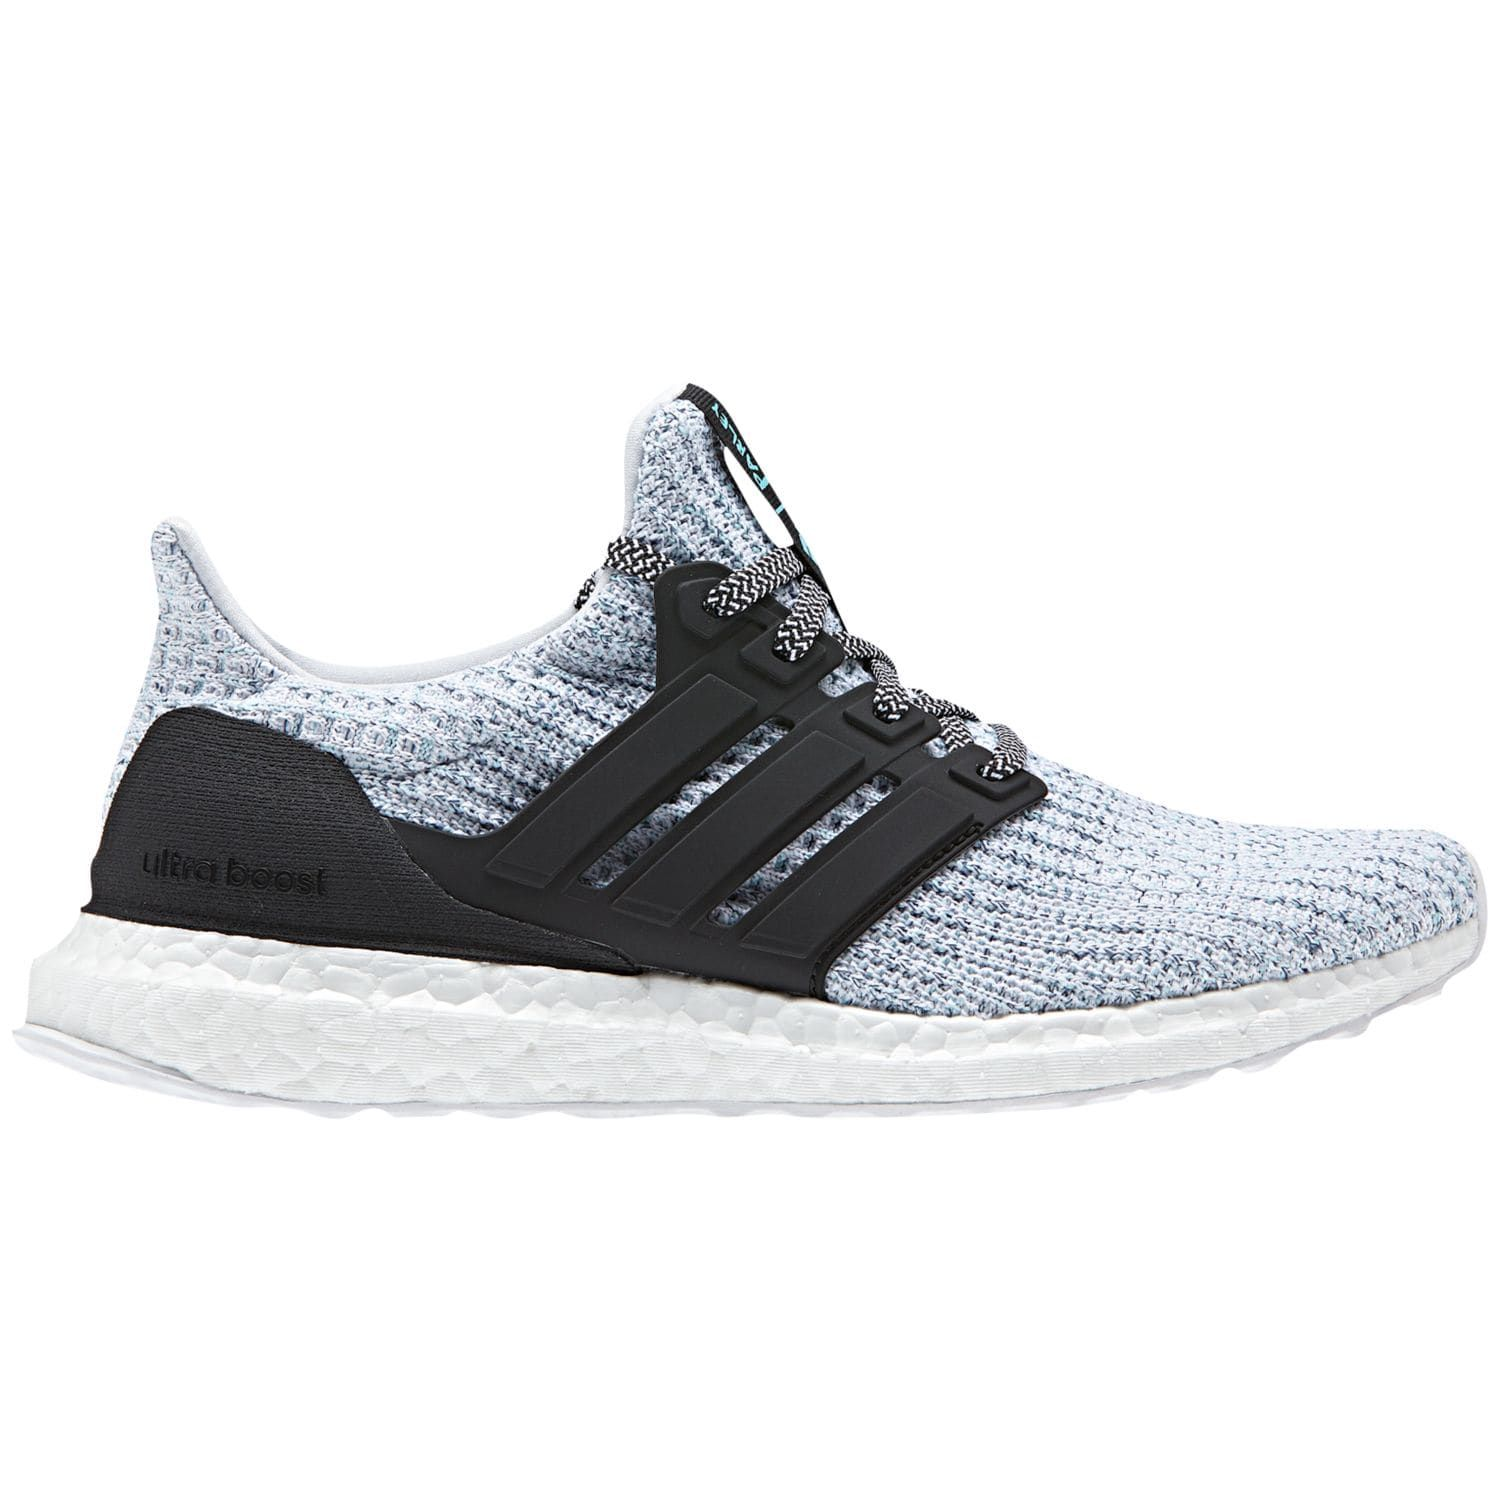 adidas Ultra Boost Parley - Women's - Running - Shoes - Blue ...